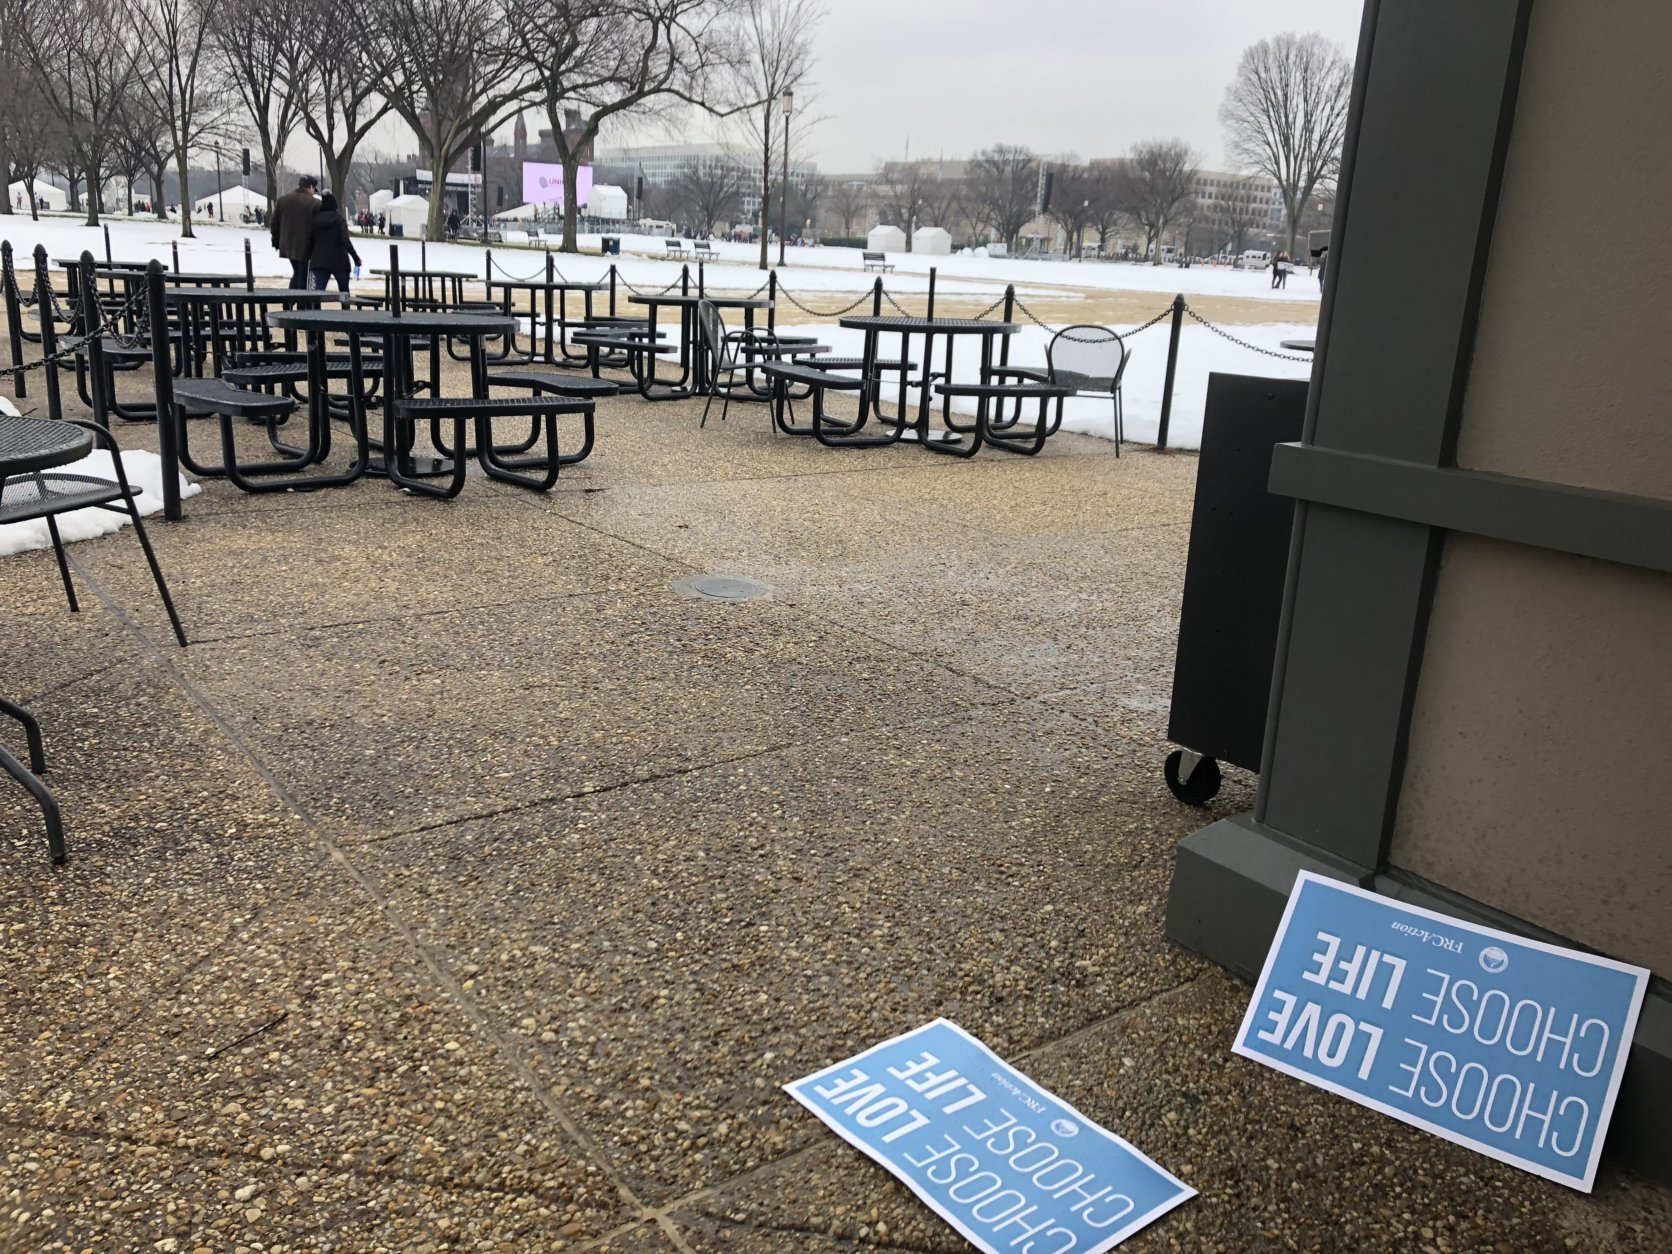 The stage was set early Friday for the annual March for Life. (WTOP/Max Smith)